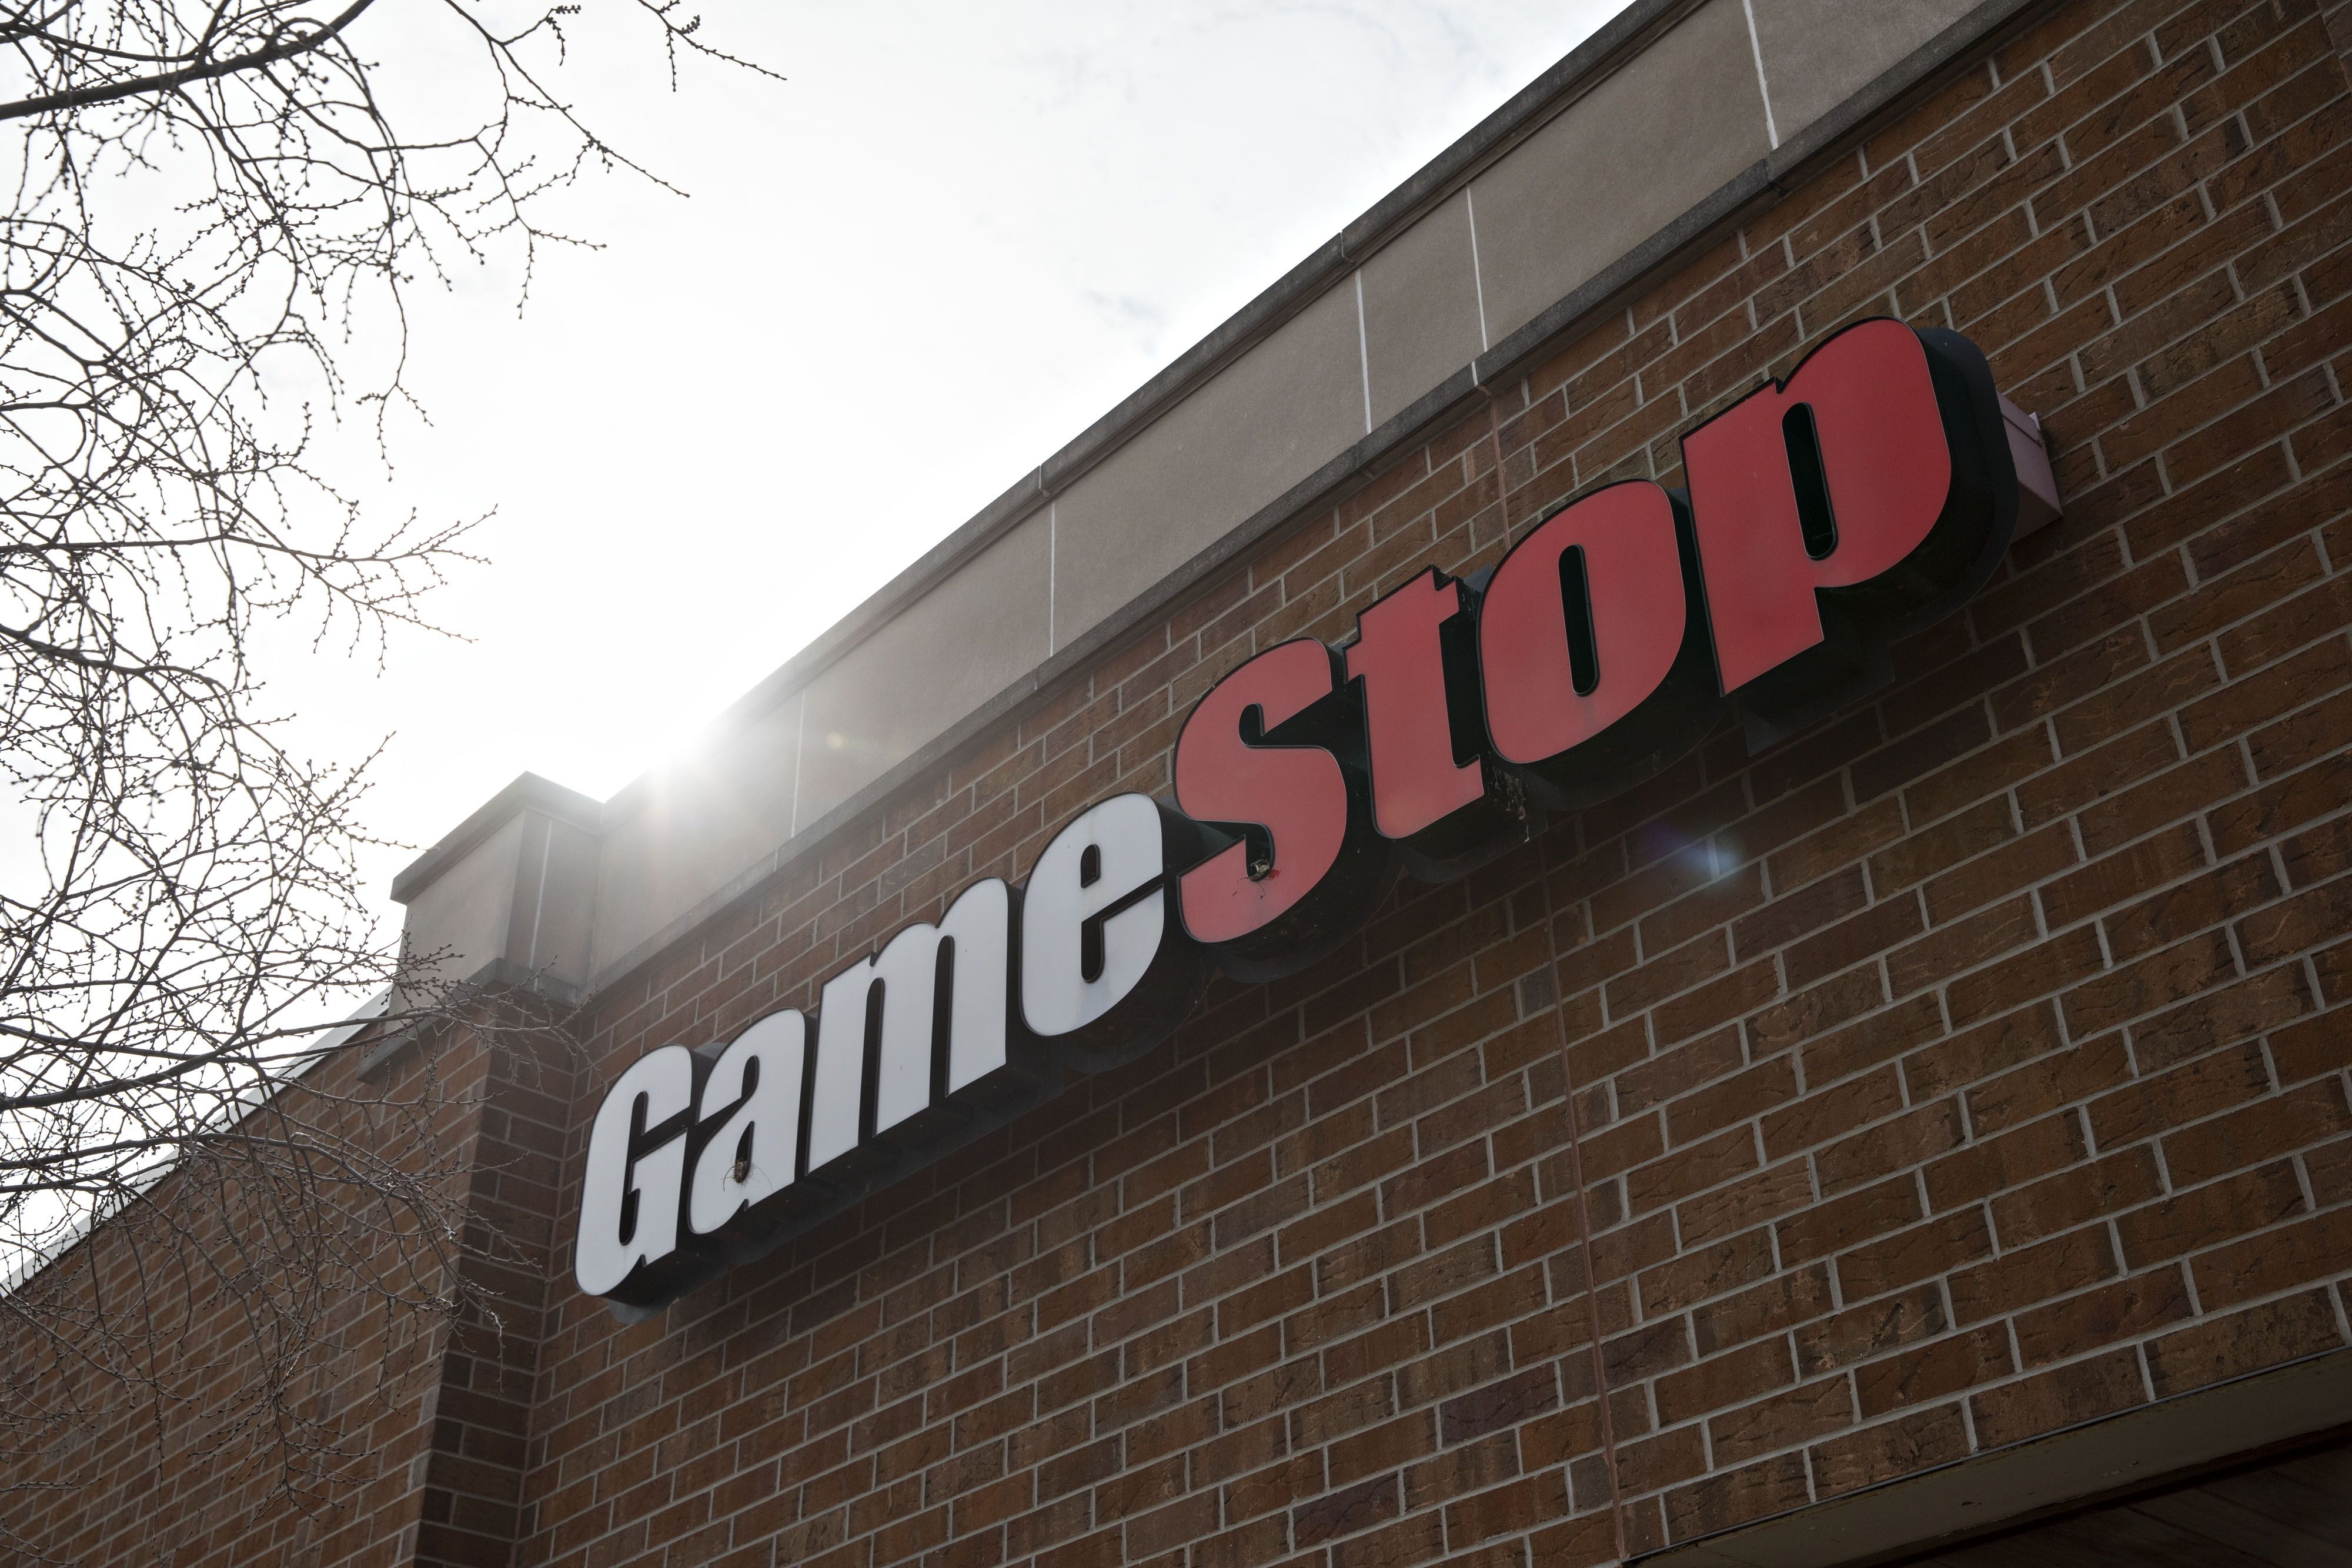 Signage is displayed at a GameStop Corp. store in Peru, Illinois, U.S., on Monday, April 1, 2019. GameStop is scheduled to release earnings figures on April 2. Photographer: Daniel Acker/Bloomberg